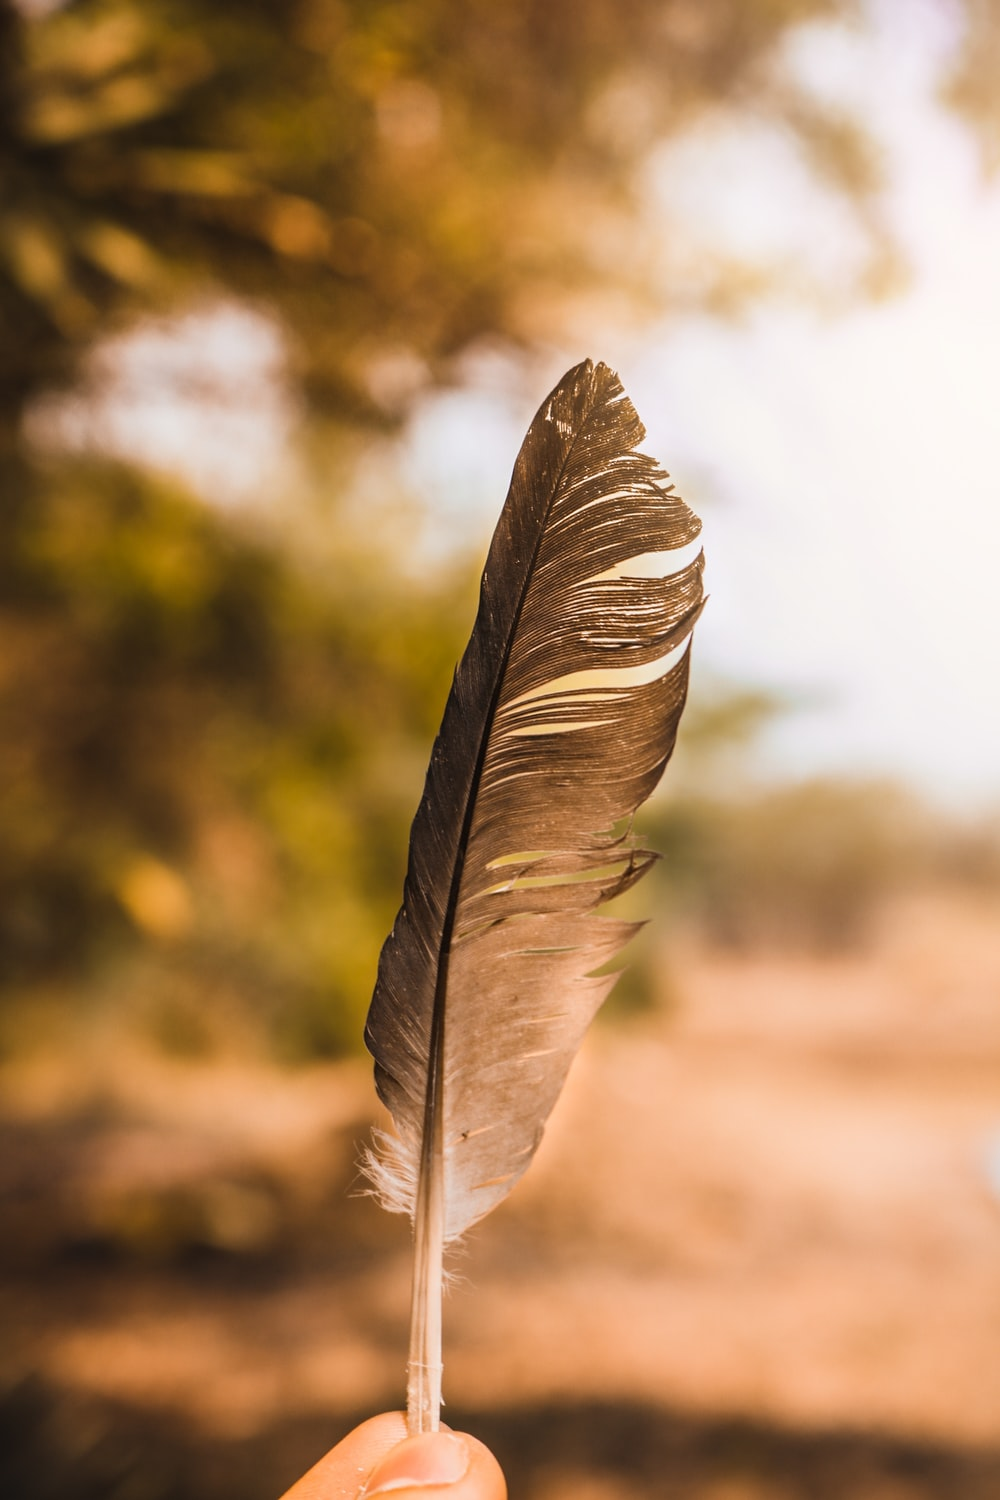 white and black feather in close up photography